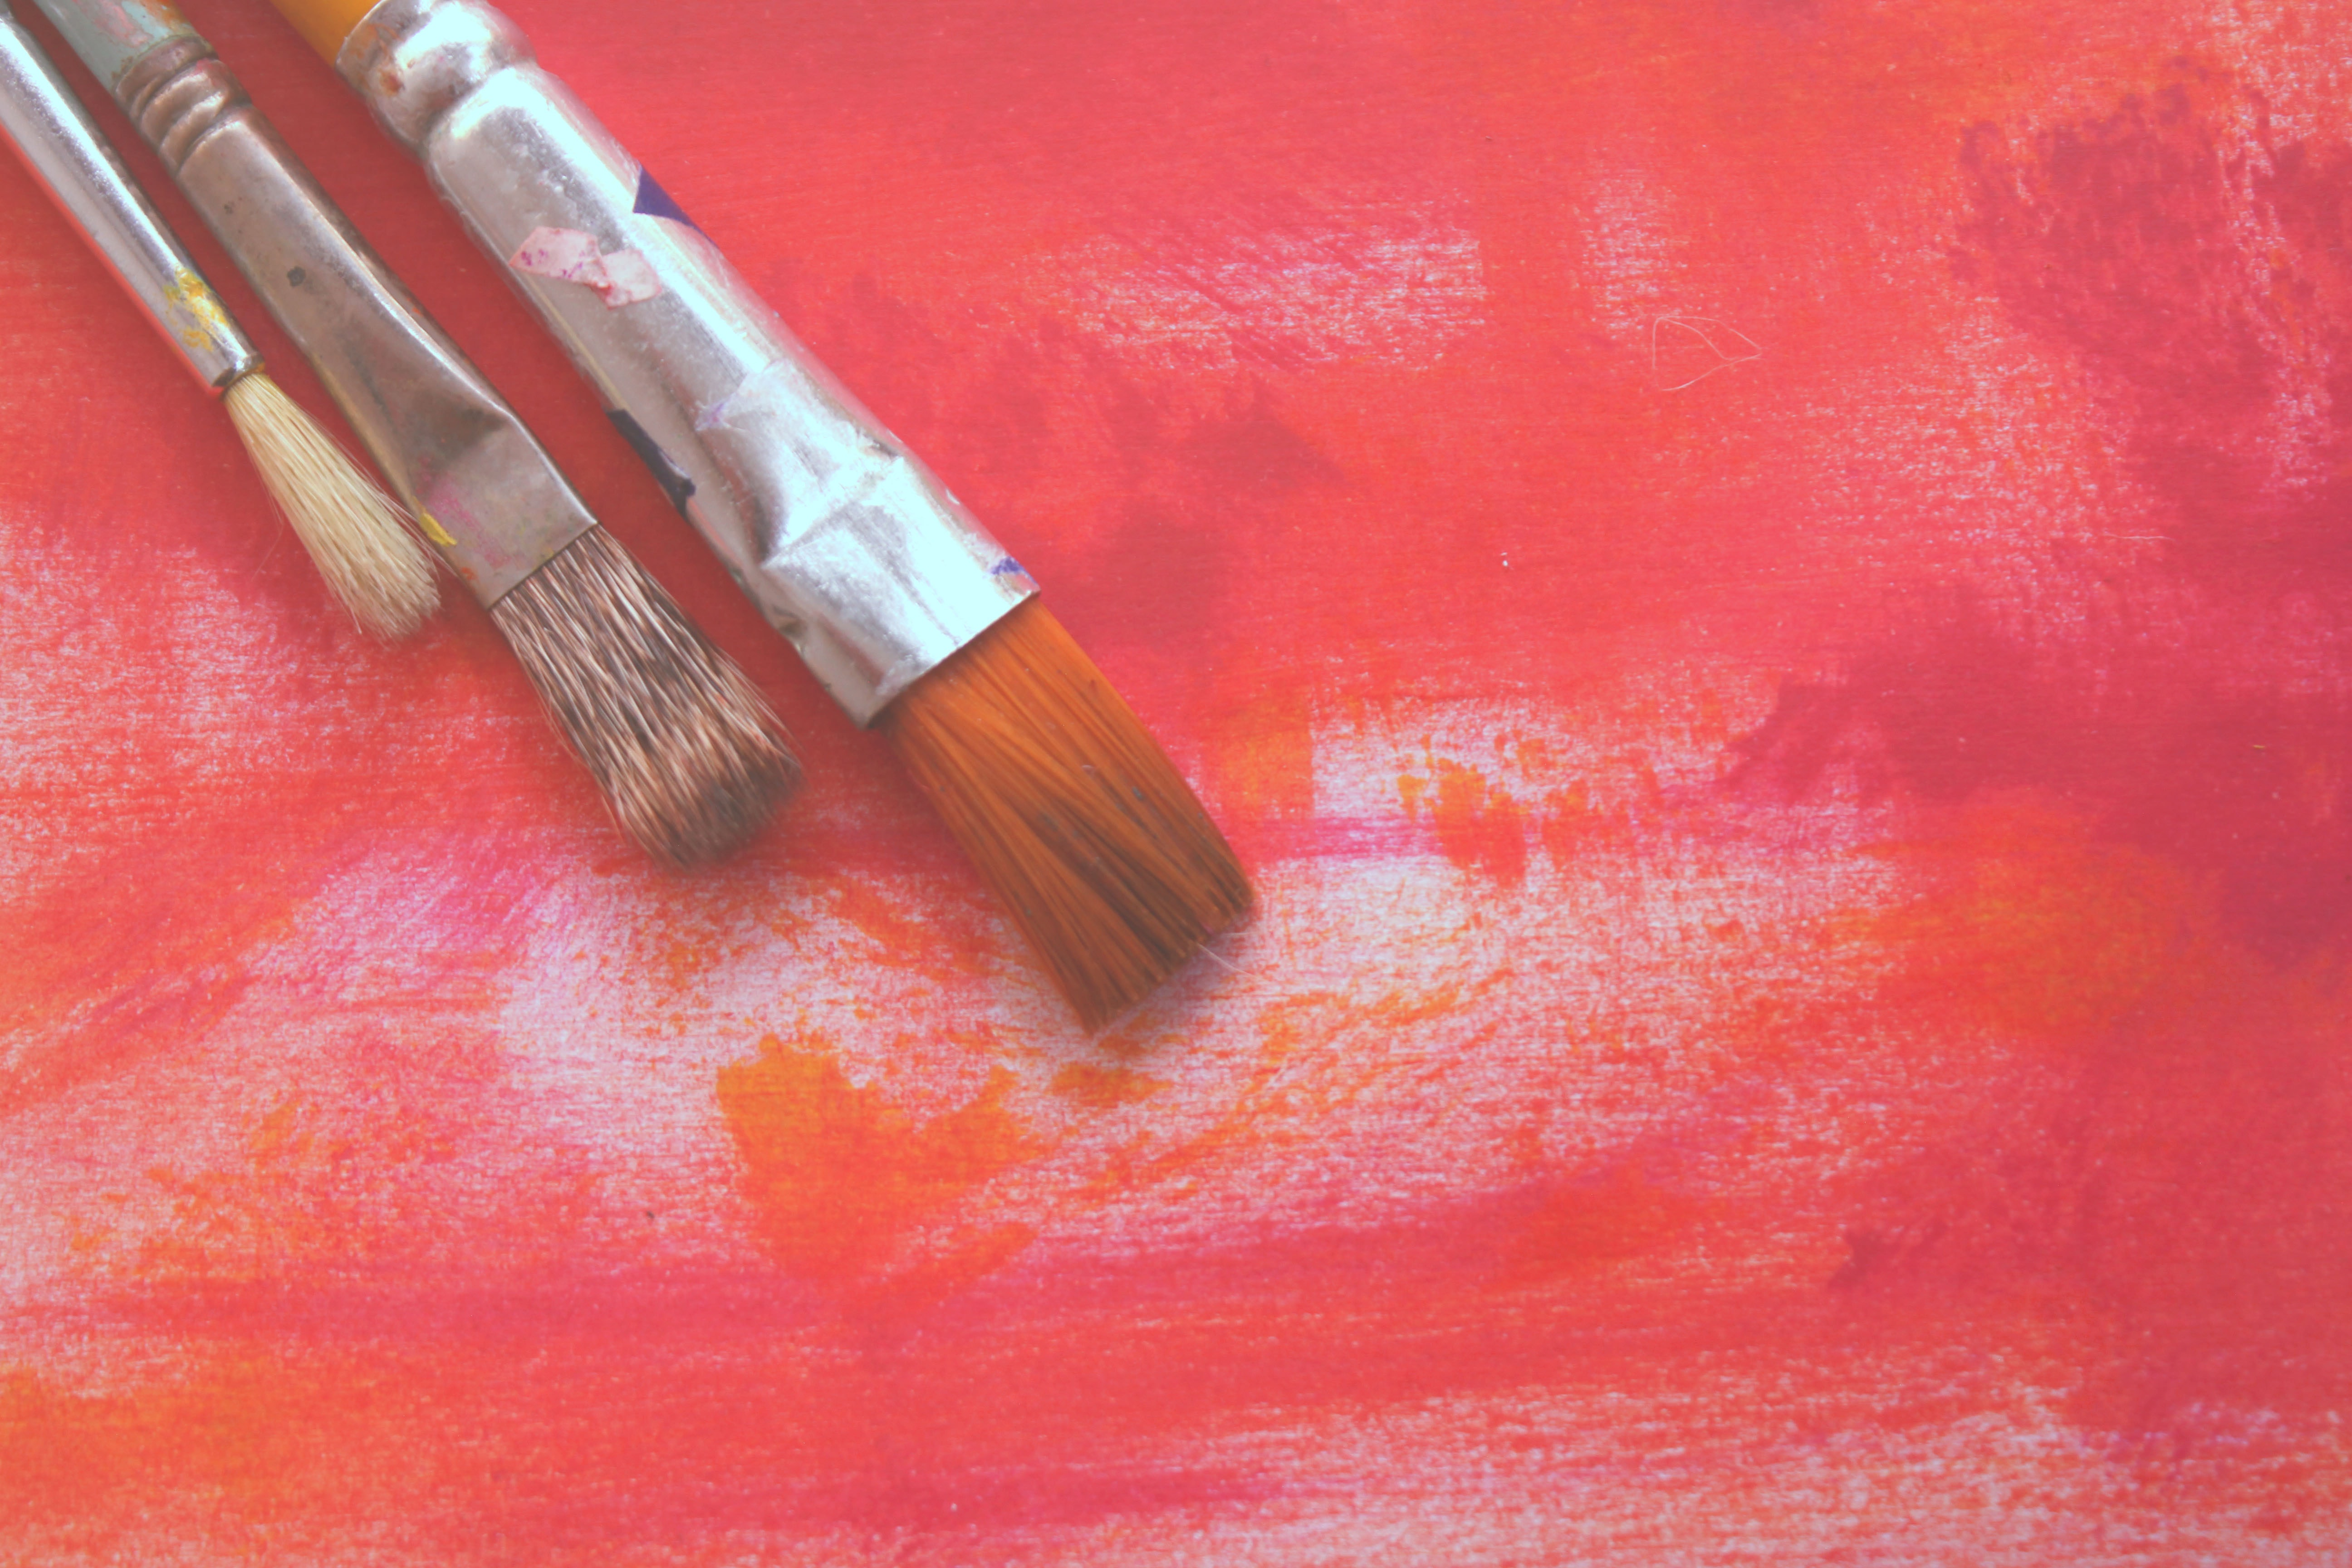 Close-up of Red Table, Abstract, Paintbrush, Wear, Red, HQ Photo